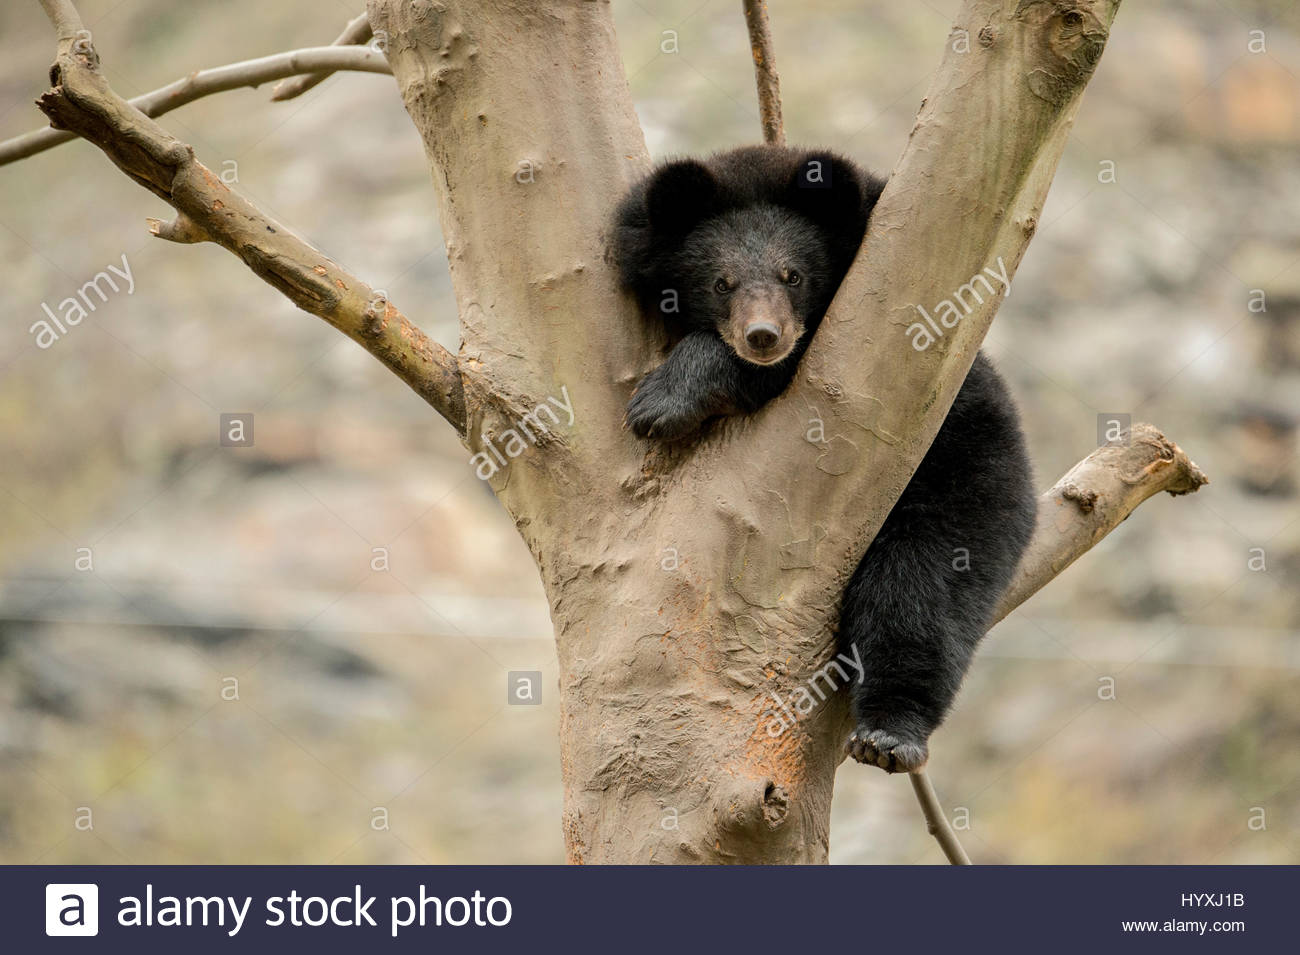 A captive Asiatic black bear in a tree. The bears are used to help train captive giant pandas that are being released - Stock Image